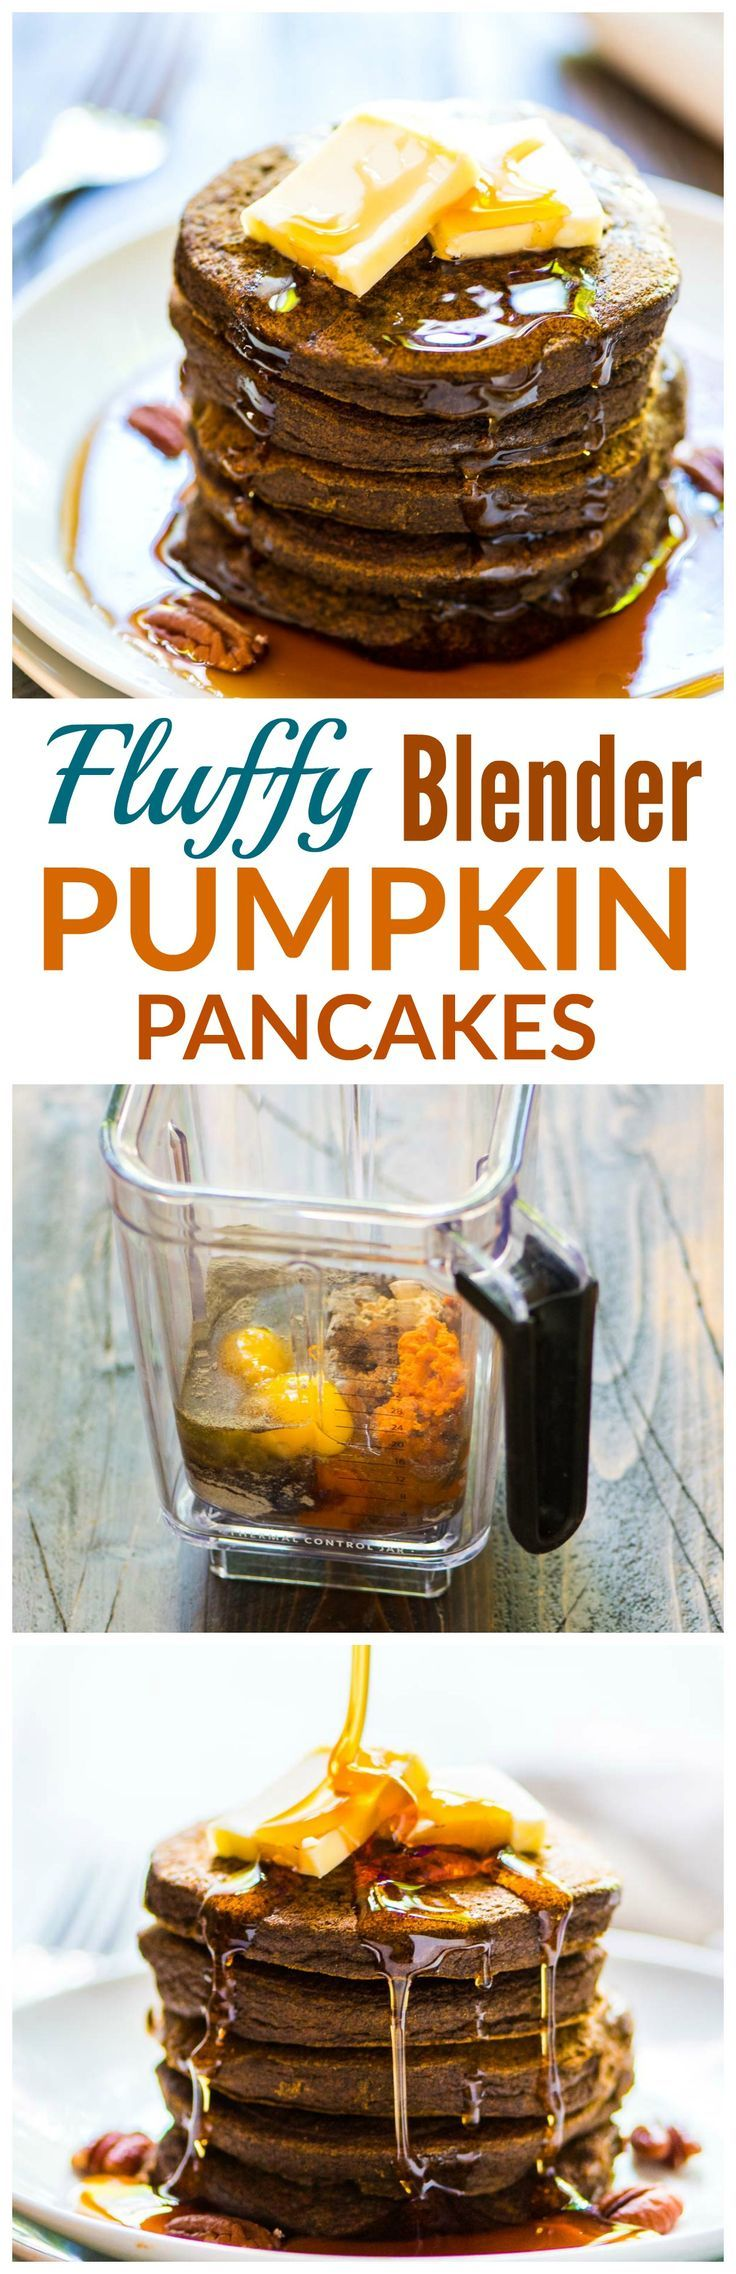 The FLUFFIEST Pumpkin Pancakes, made in the blender! NO CLEAN UP. Easy and healthy recipe your kids will love. {gluten free, naturally sweetened}  @wellplated